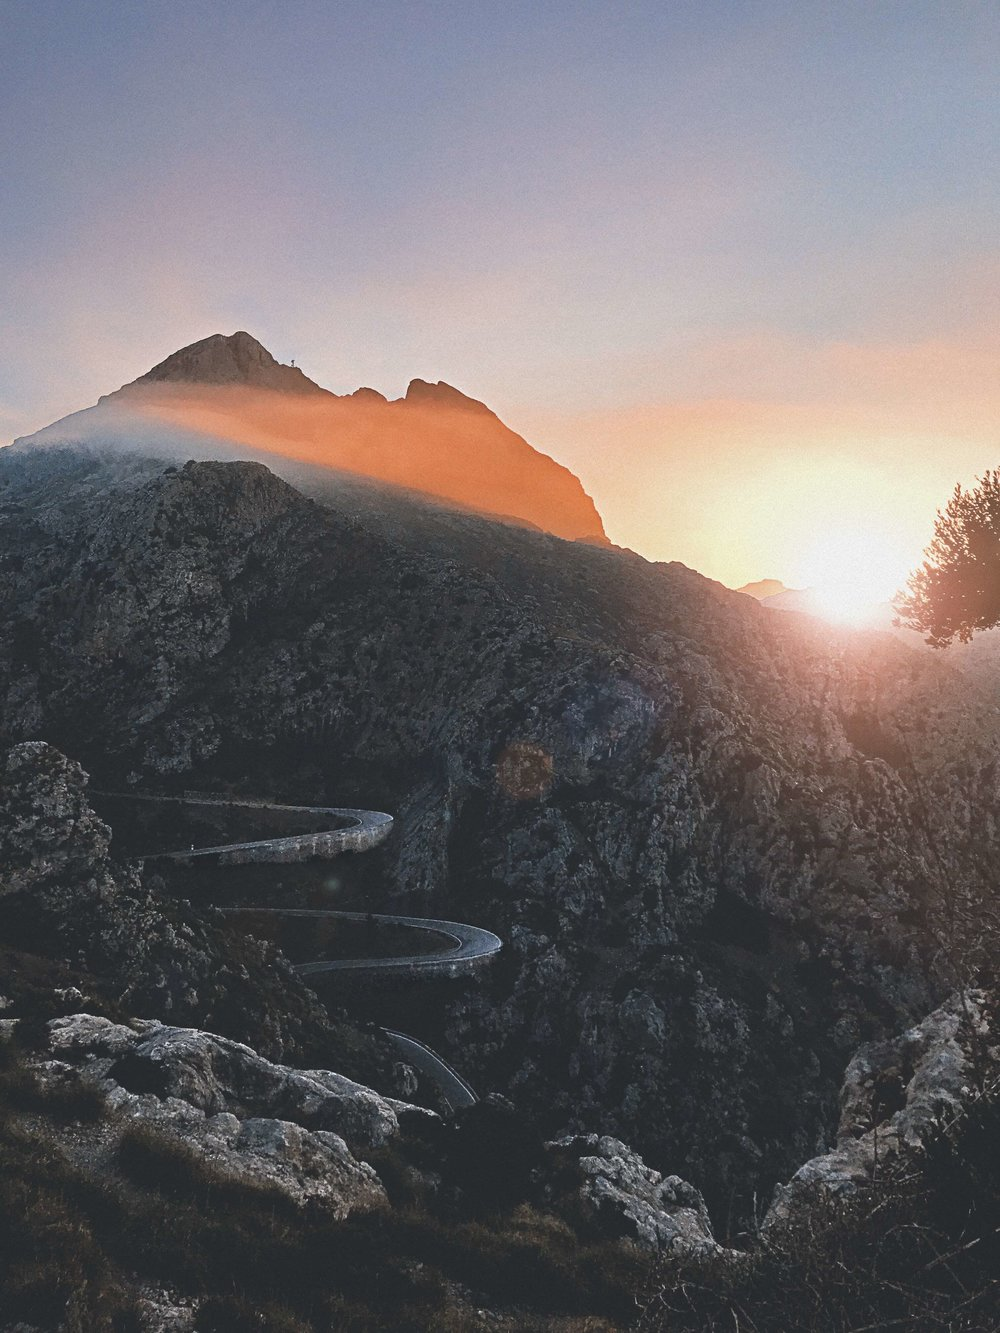 Mallorca mountains at sunset